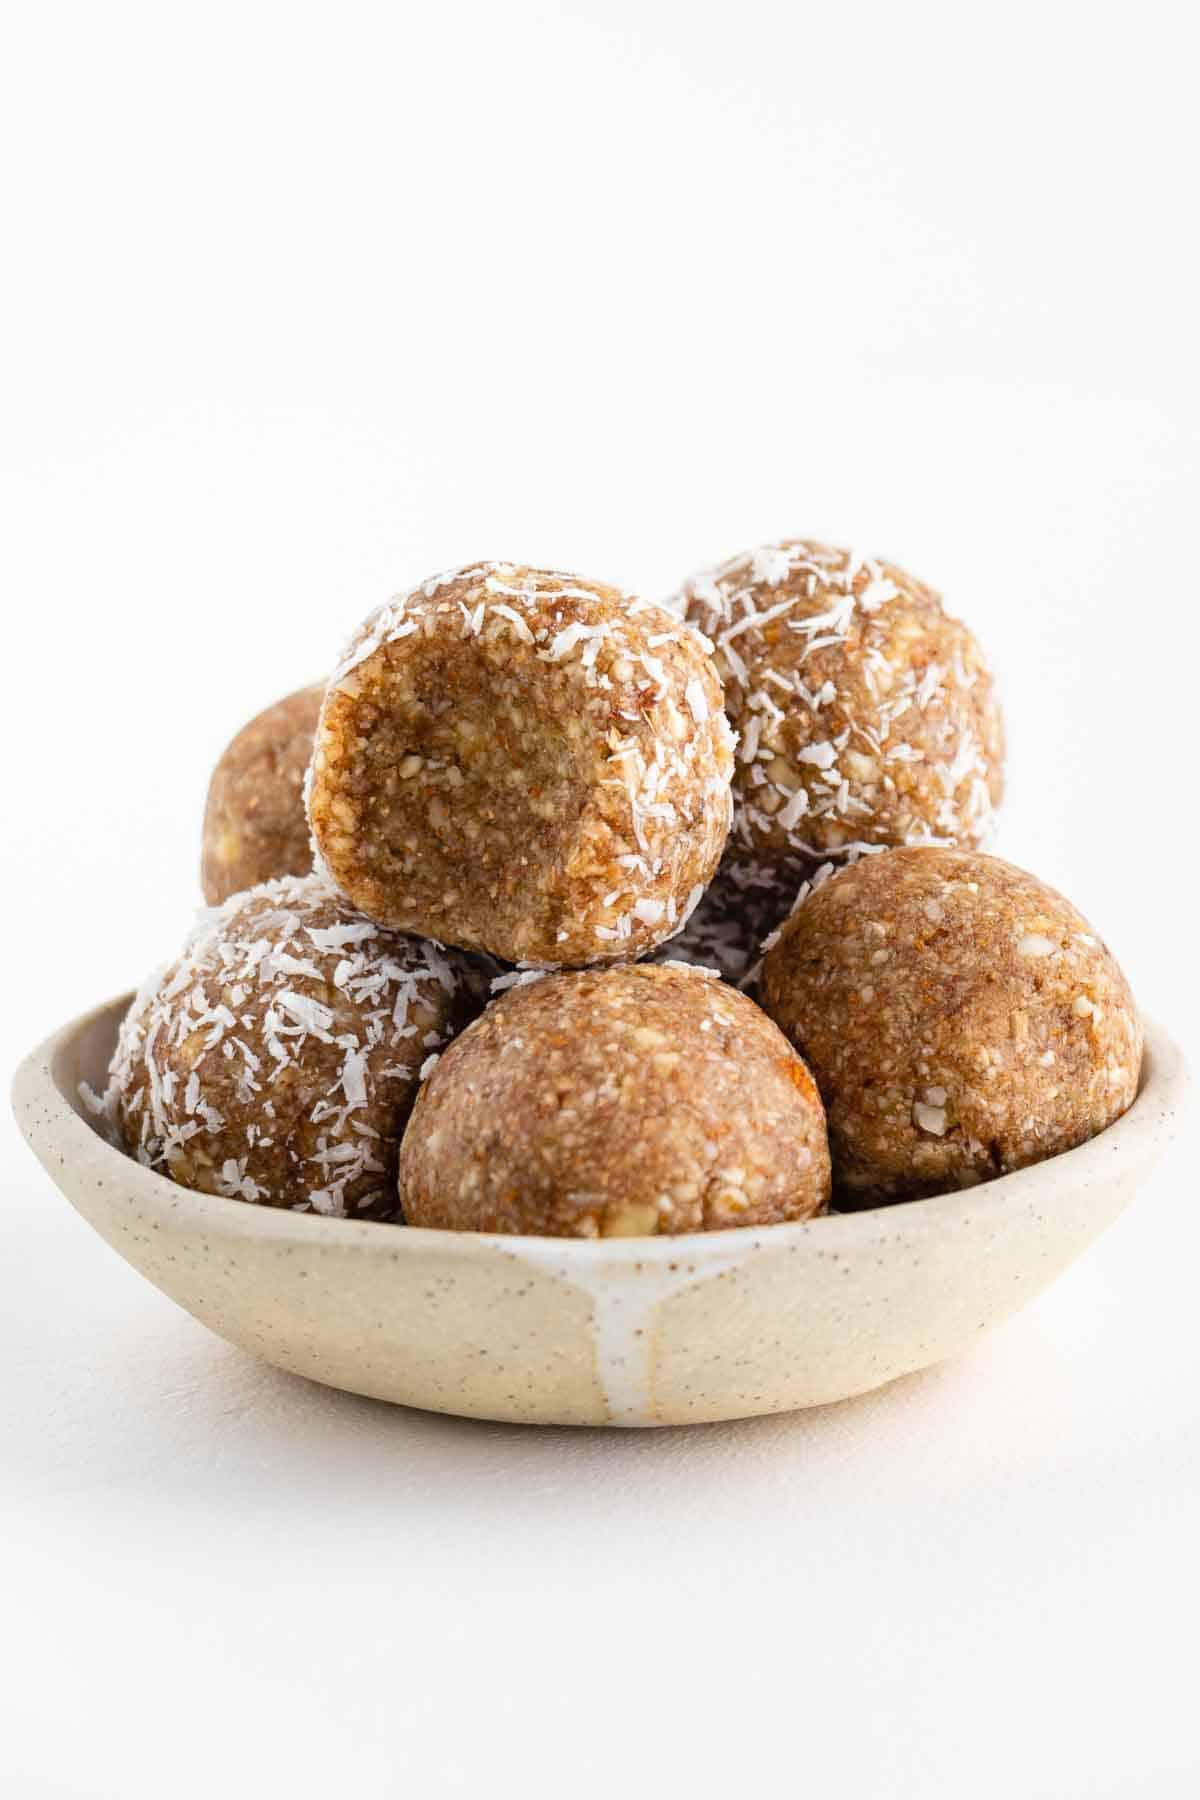 coconut almond bliss balls stacked in a ceramic bowl